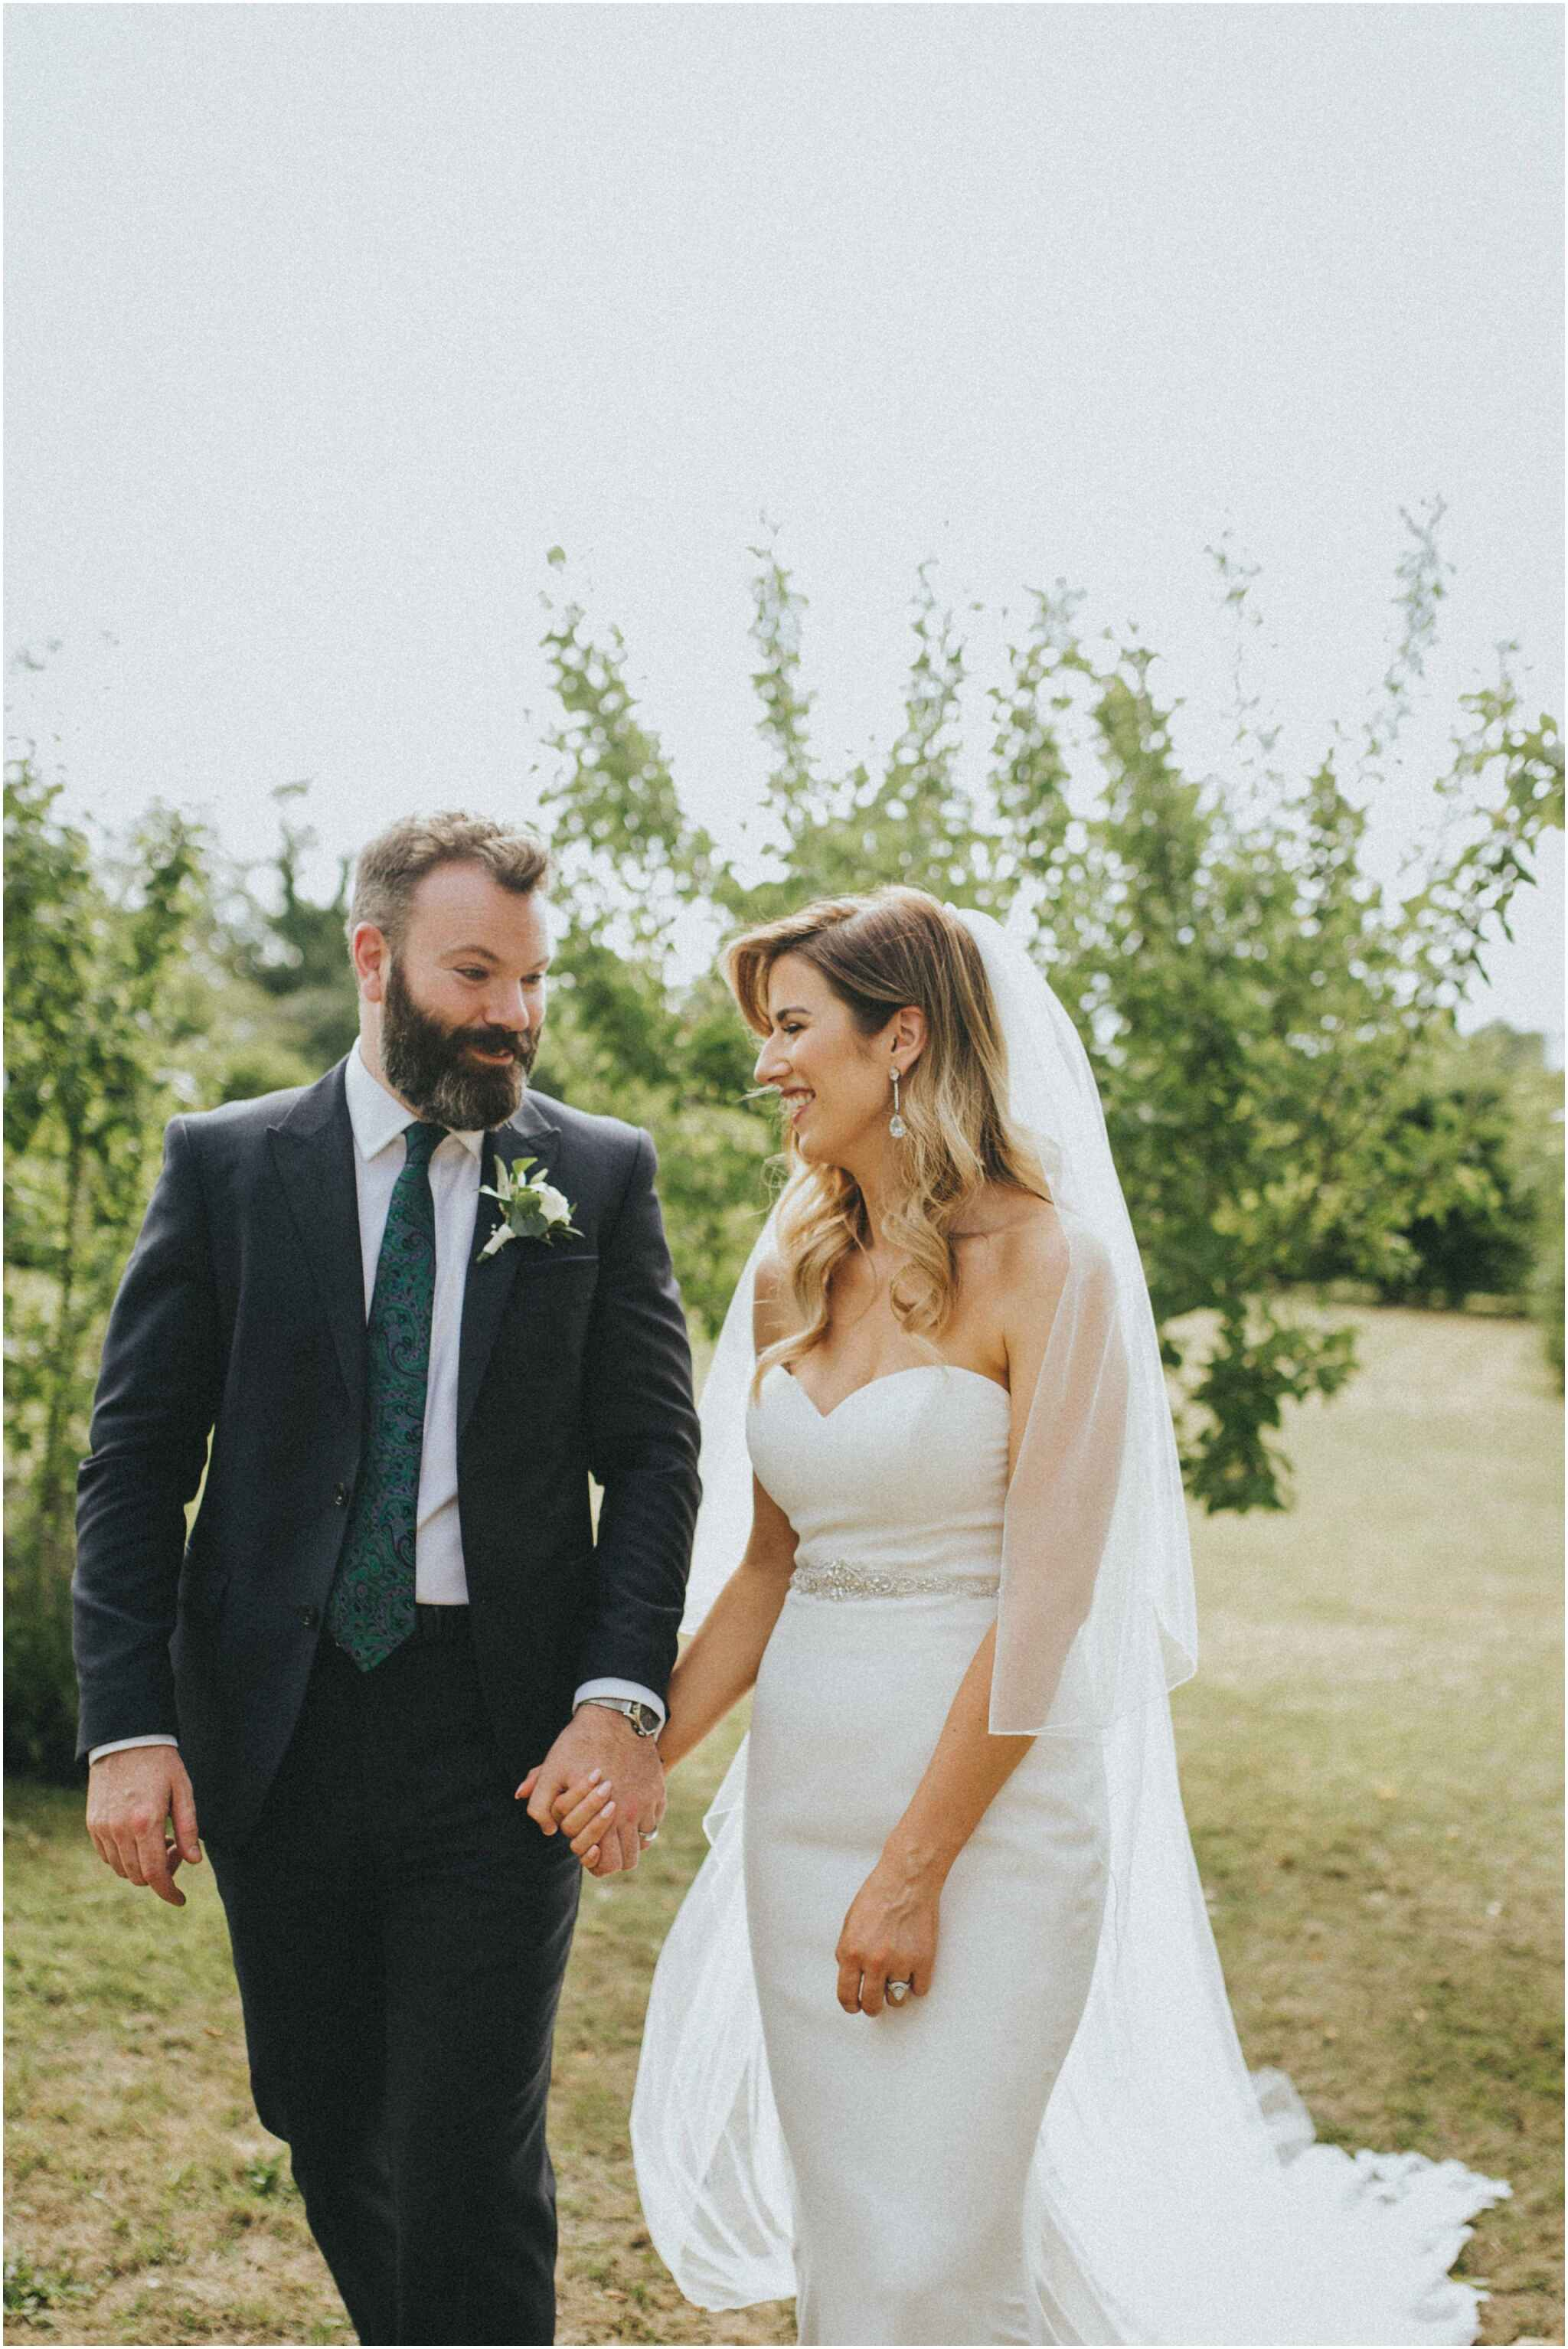 ballymagarvey village wedding 00091 - Fun and Relaxed wedding and elopement photography in Ireland, perfect for adventurous and outdoorsy couples